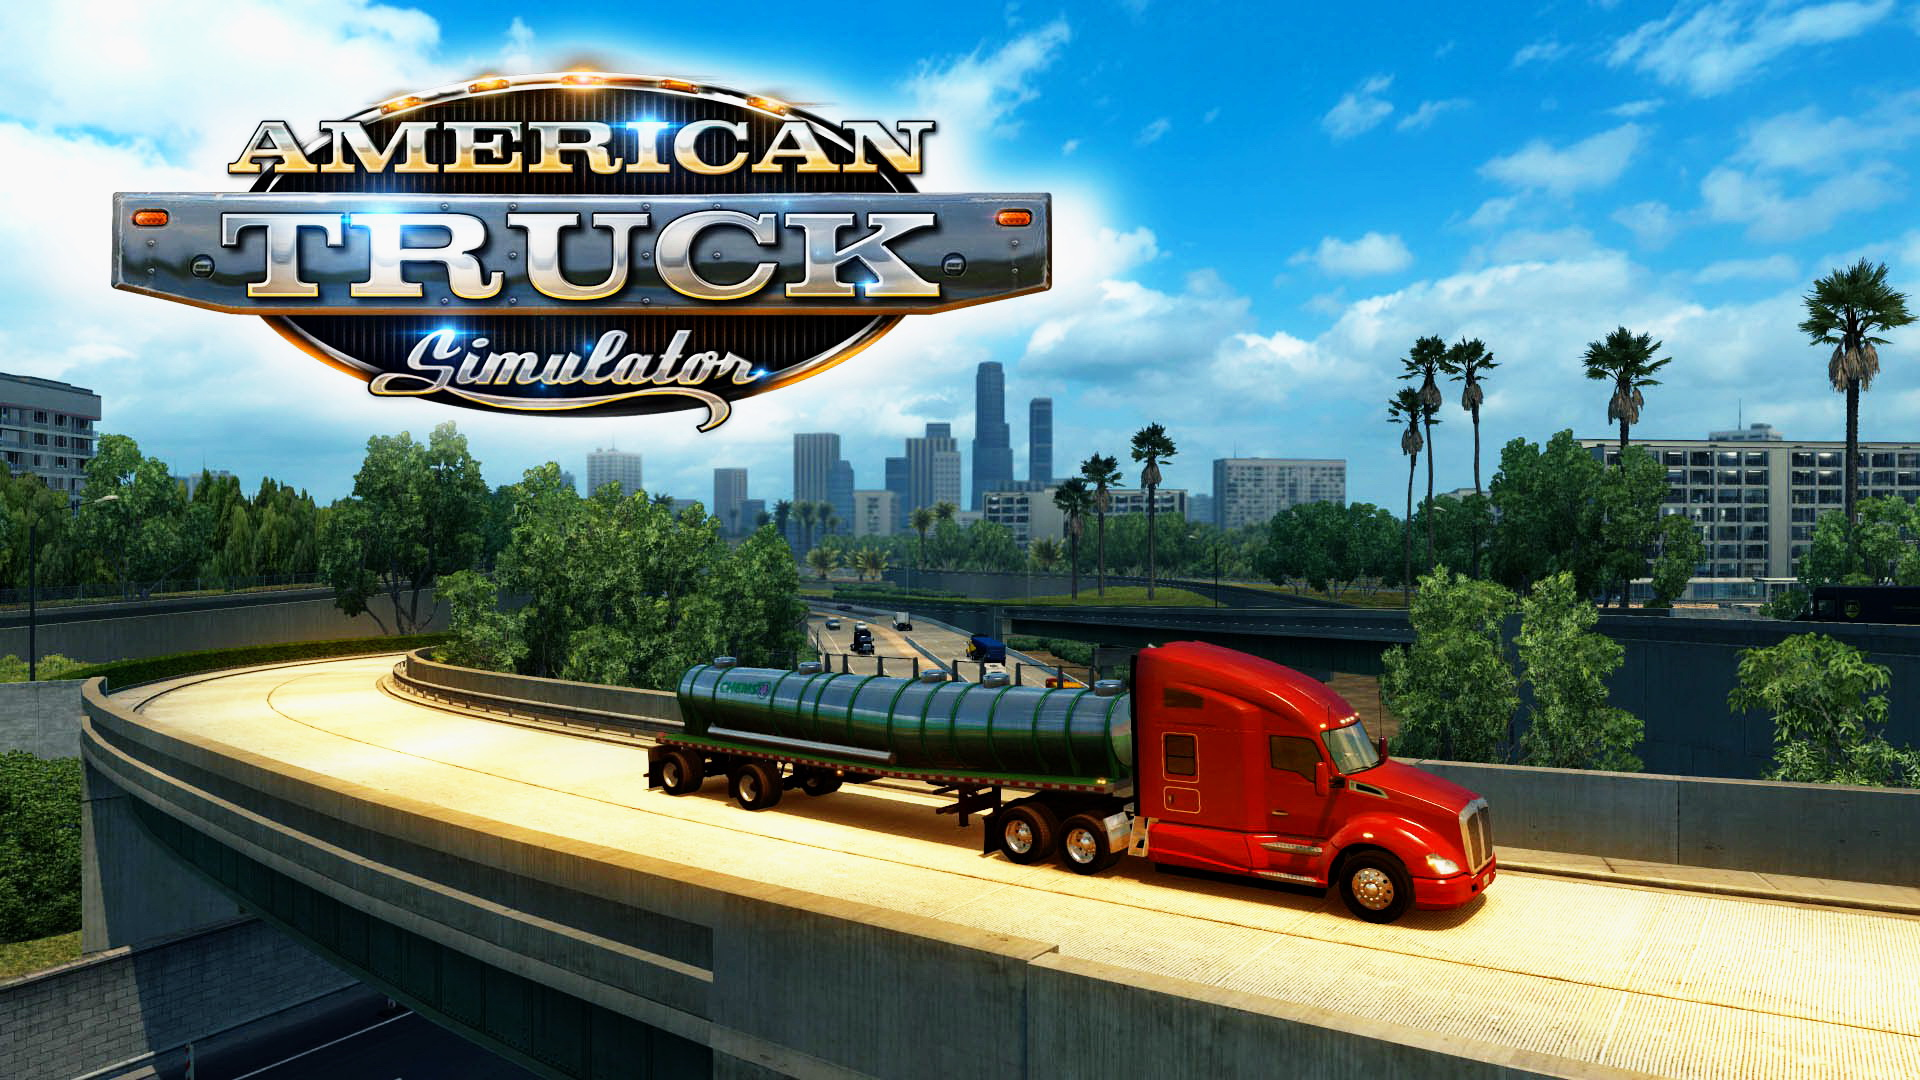 American Truck Simulator: Official Launch Trailer